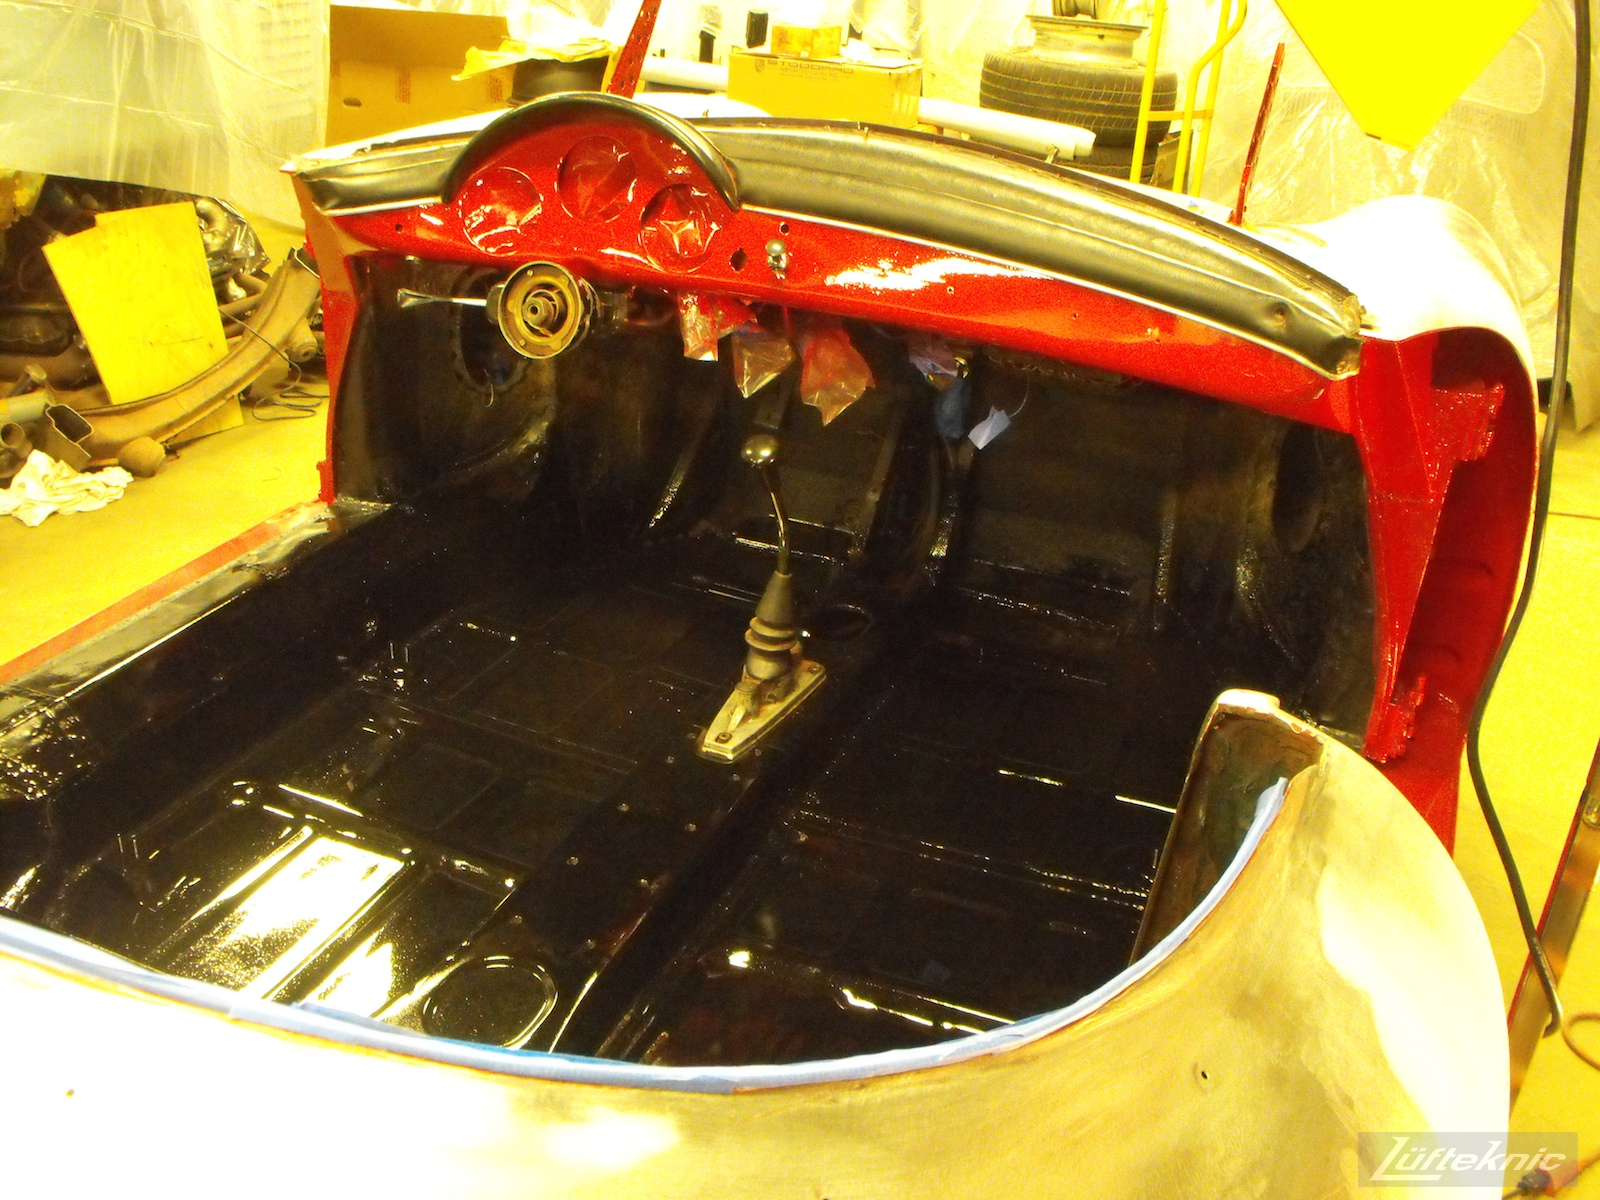 Painted dash and interior on a 1961 Porsche 356B Roadster restoration.